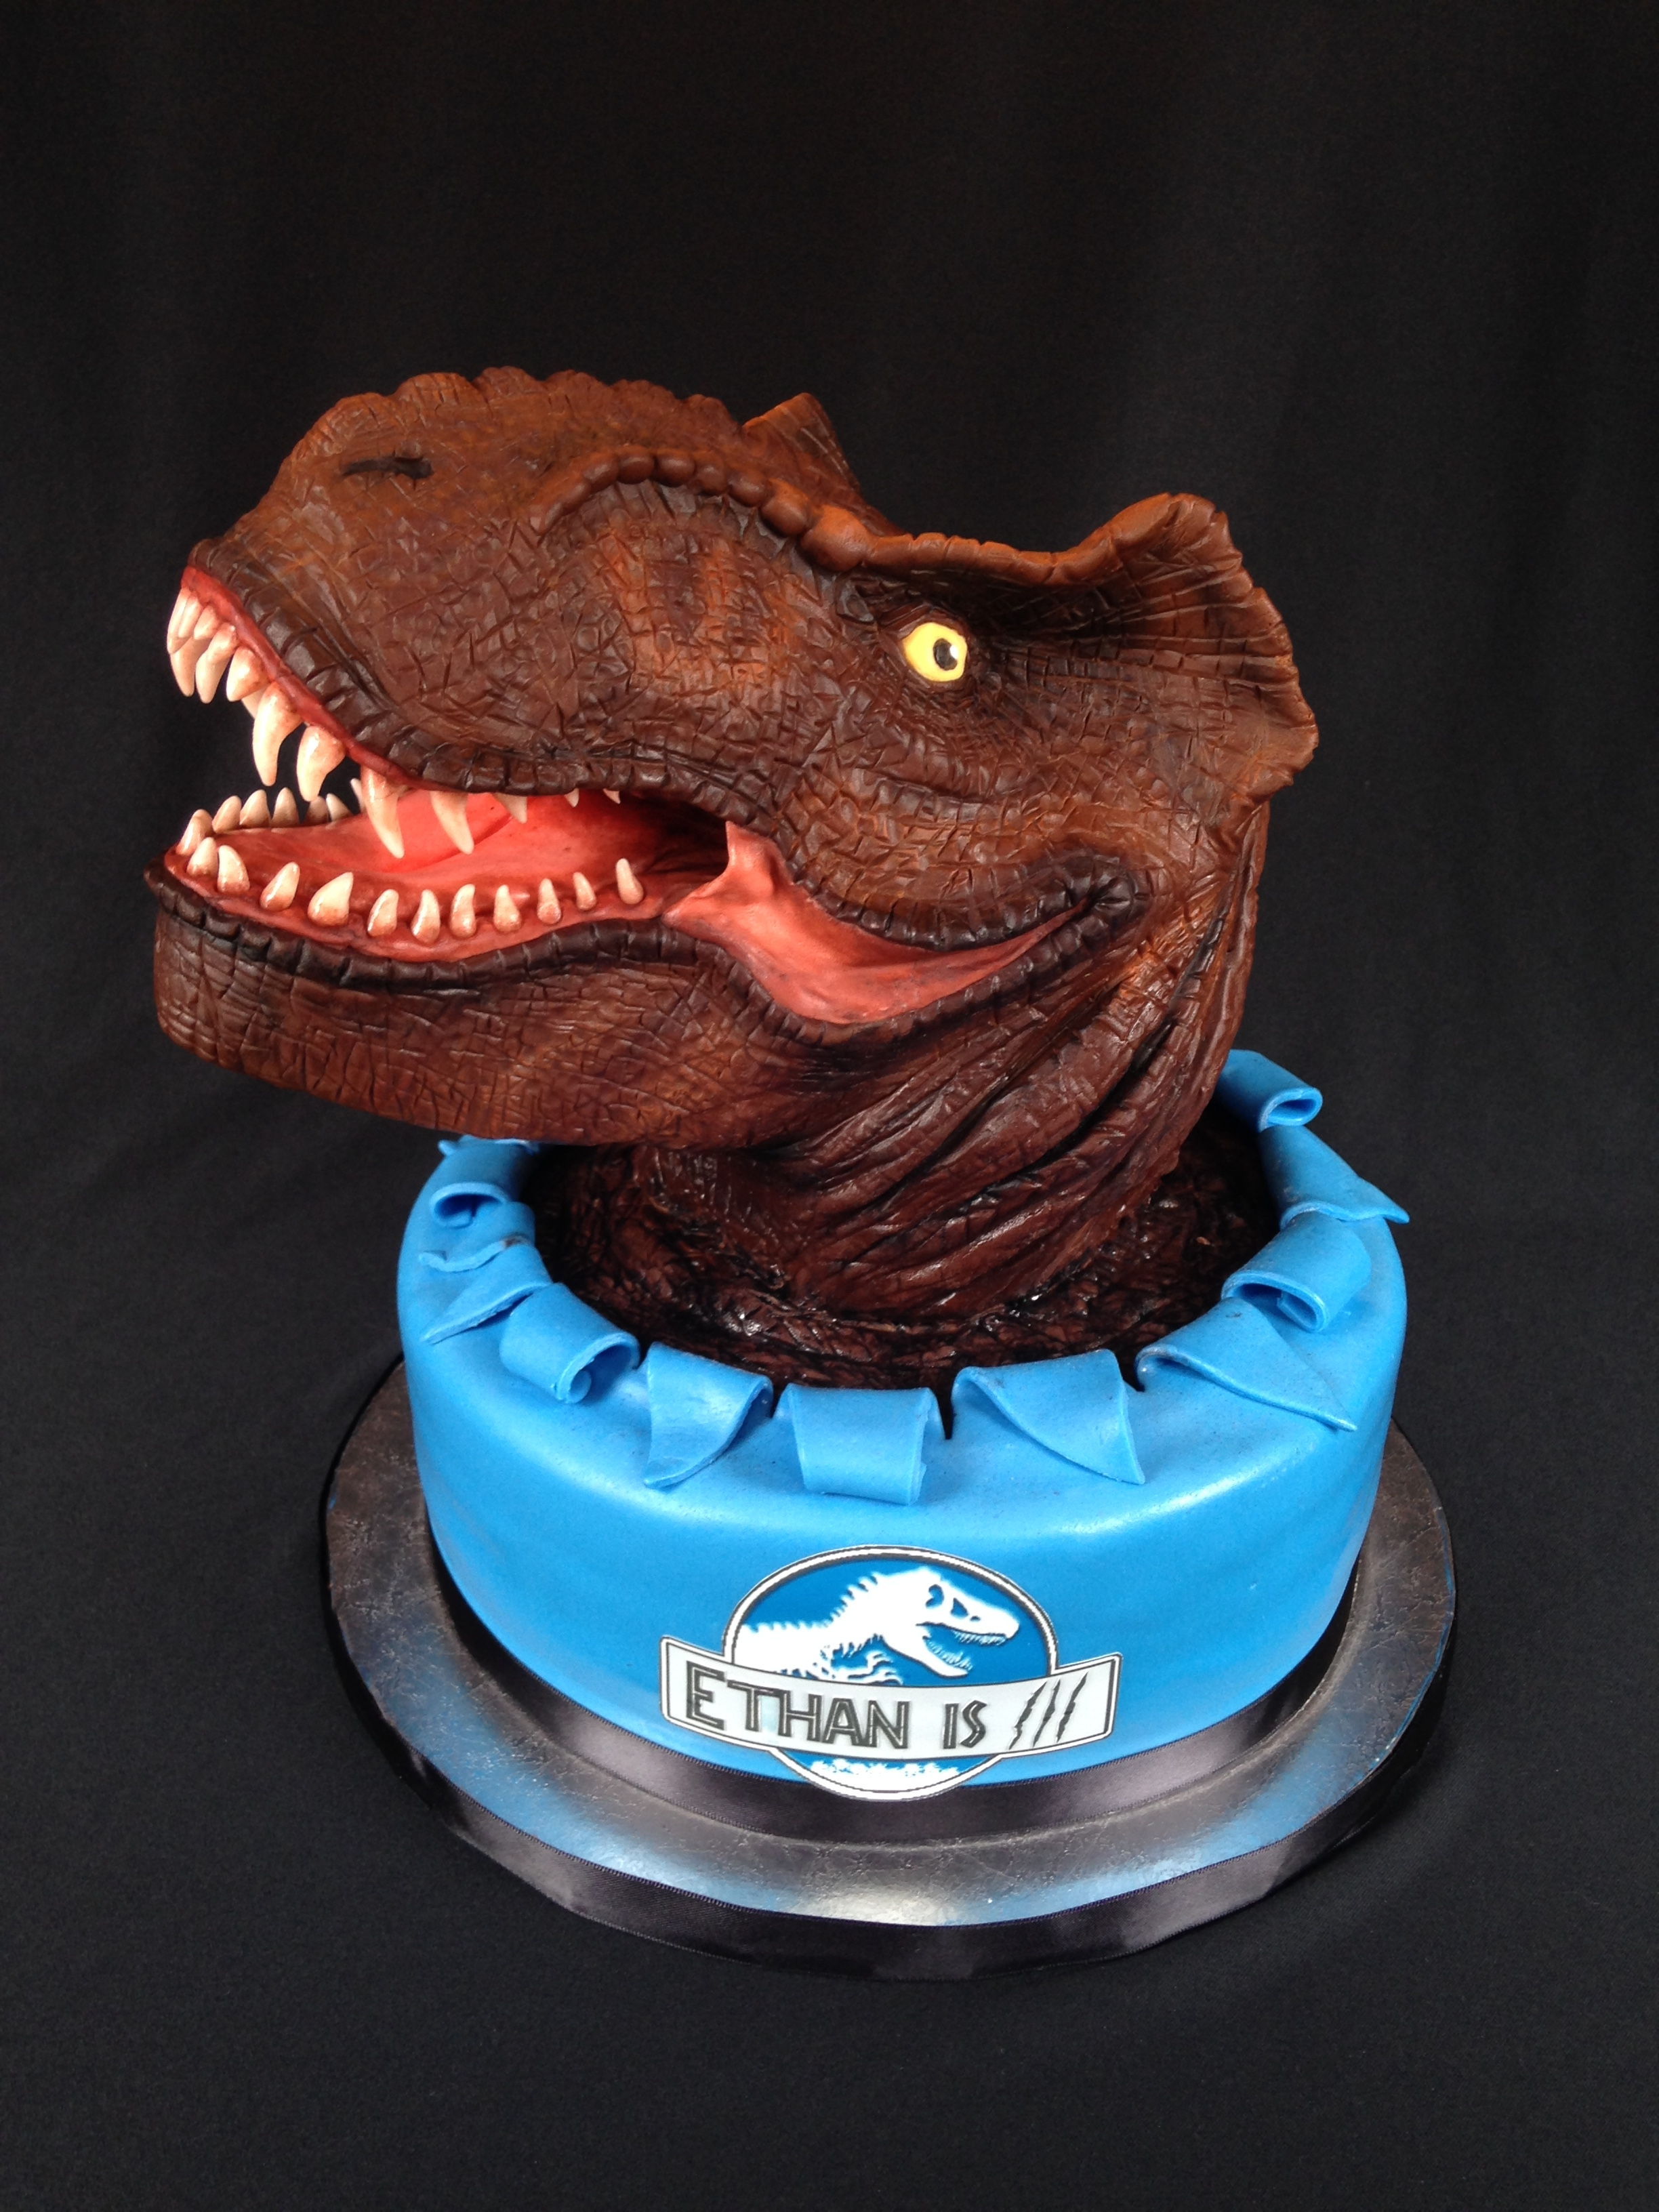 T Rex Cake  T Rex made of RKT covered in modeling chocolate and details by hand. Base cake chocolate with choc chip cookie dough frosting covered in...